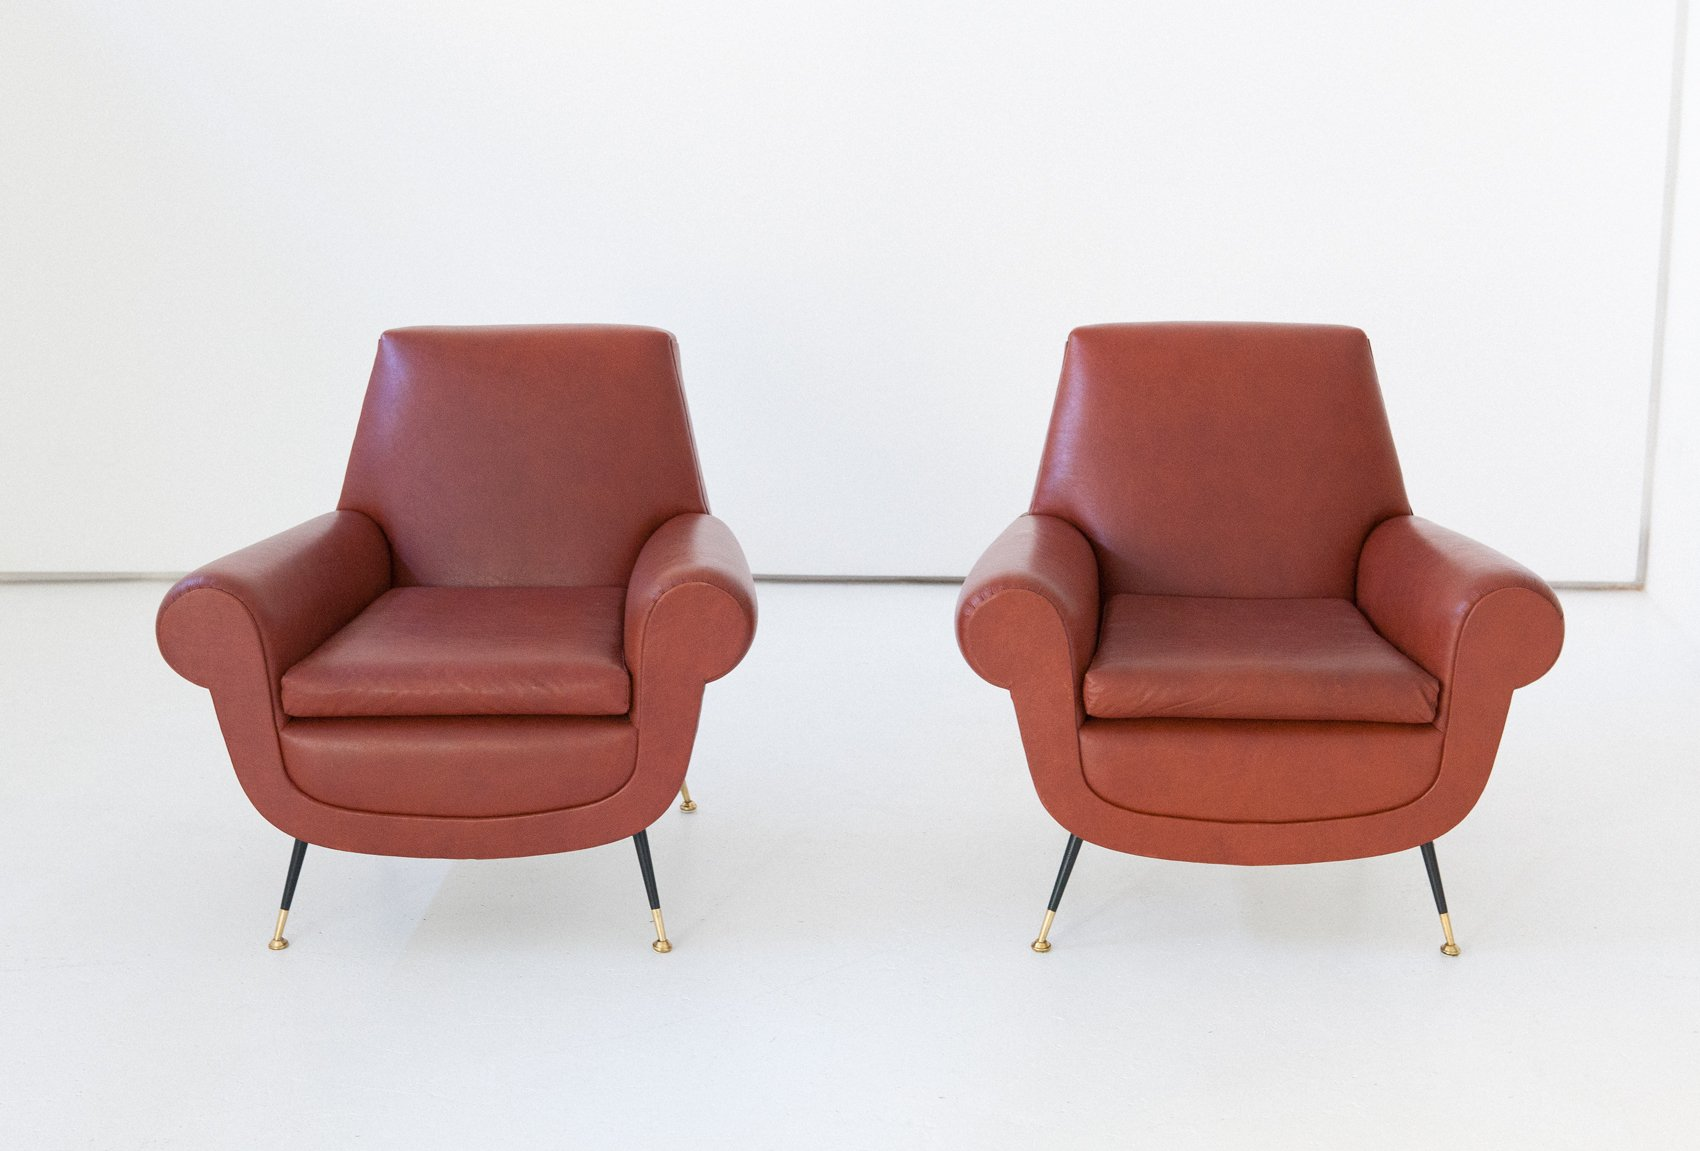 Italian Faux Leather Armchairs By Gigi Radice For Minotti, 1950s, Set Of 2